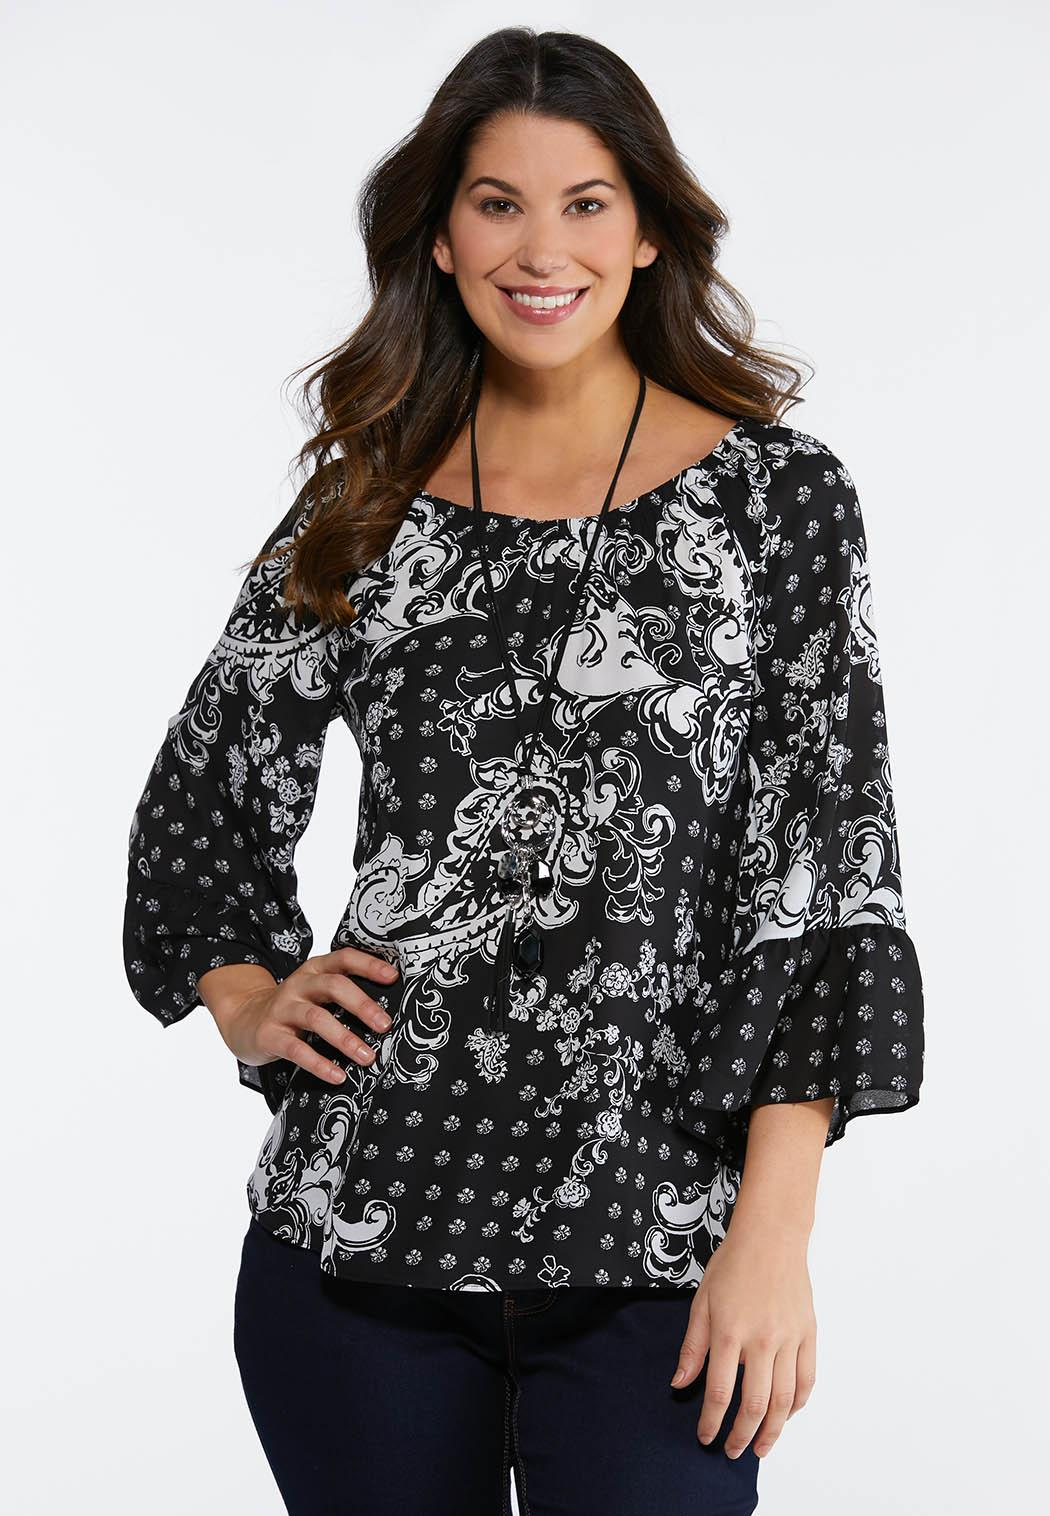 Blooms And Paisley Poet Top